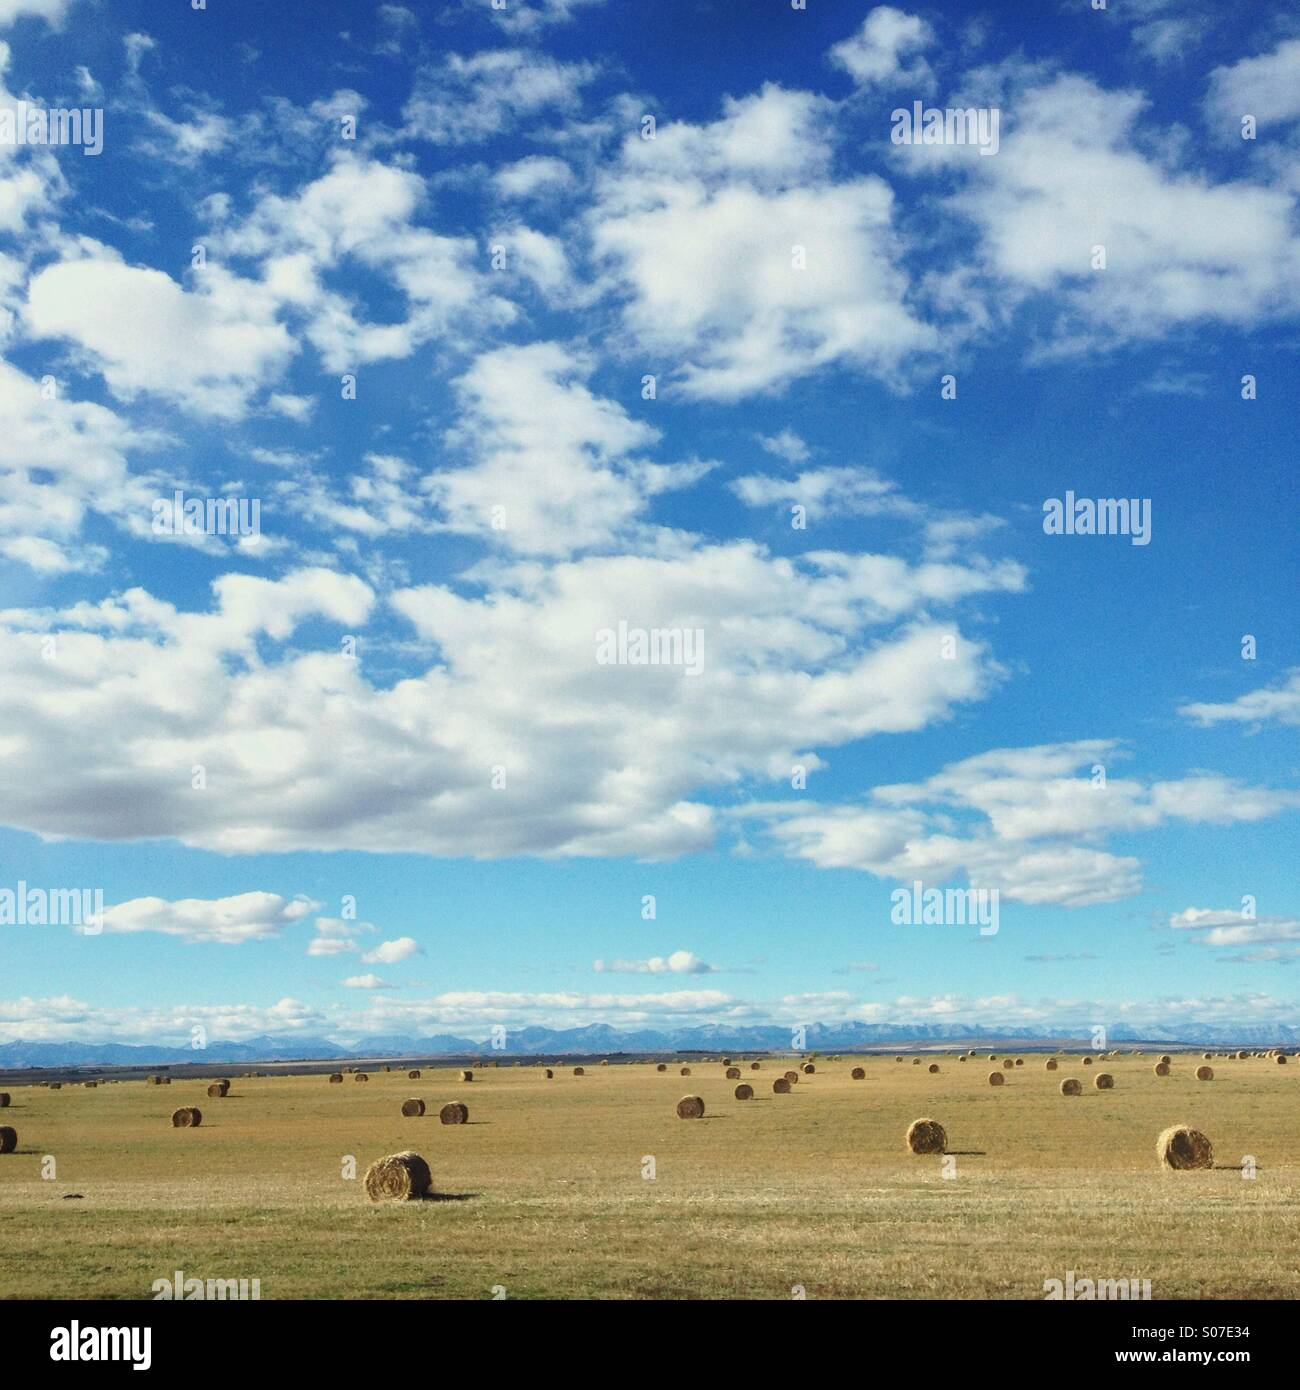 Sunny fall day in the Alberta prairies with hay or straw bales in a field with Rocky Mountains in the distance. - Stock Image